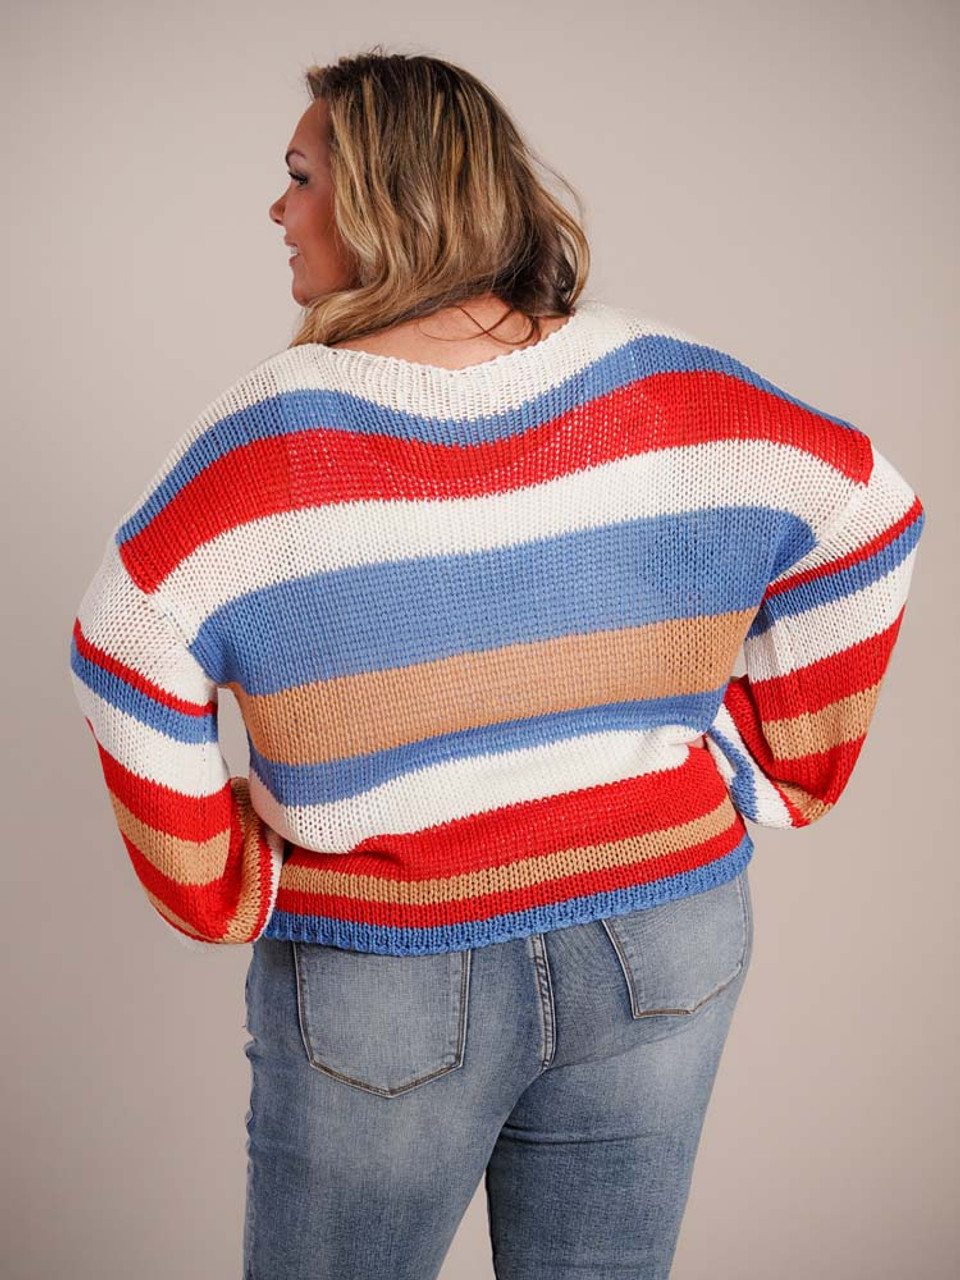 Loose knit sweater with with fun varying cream, blue, red, and gold stripes